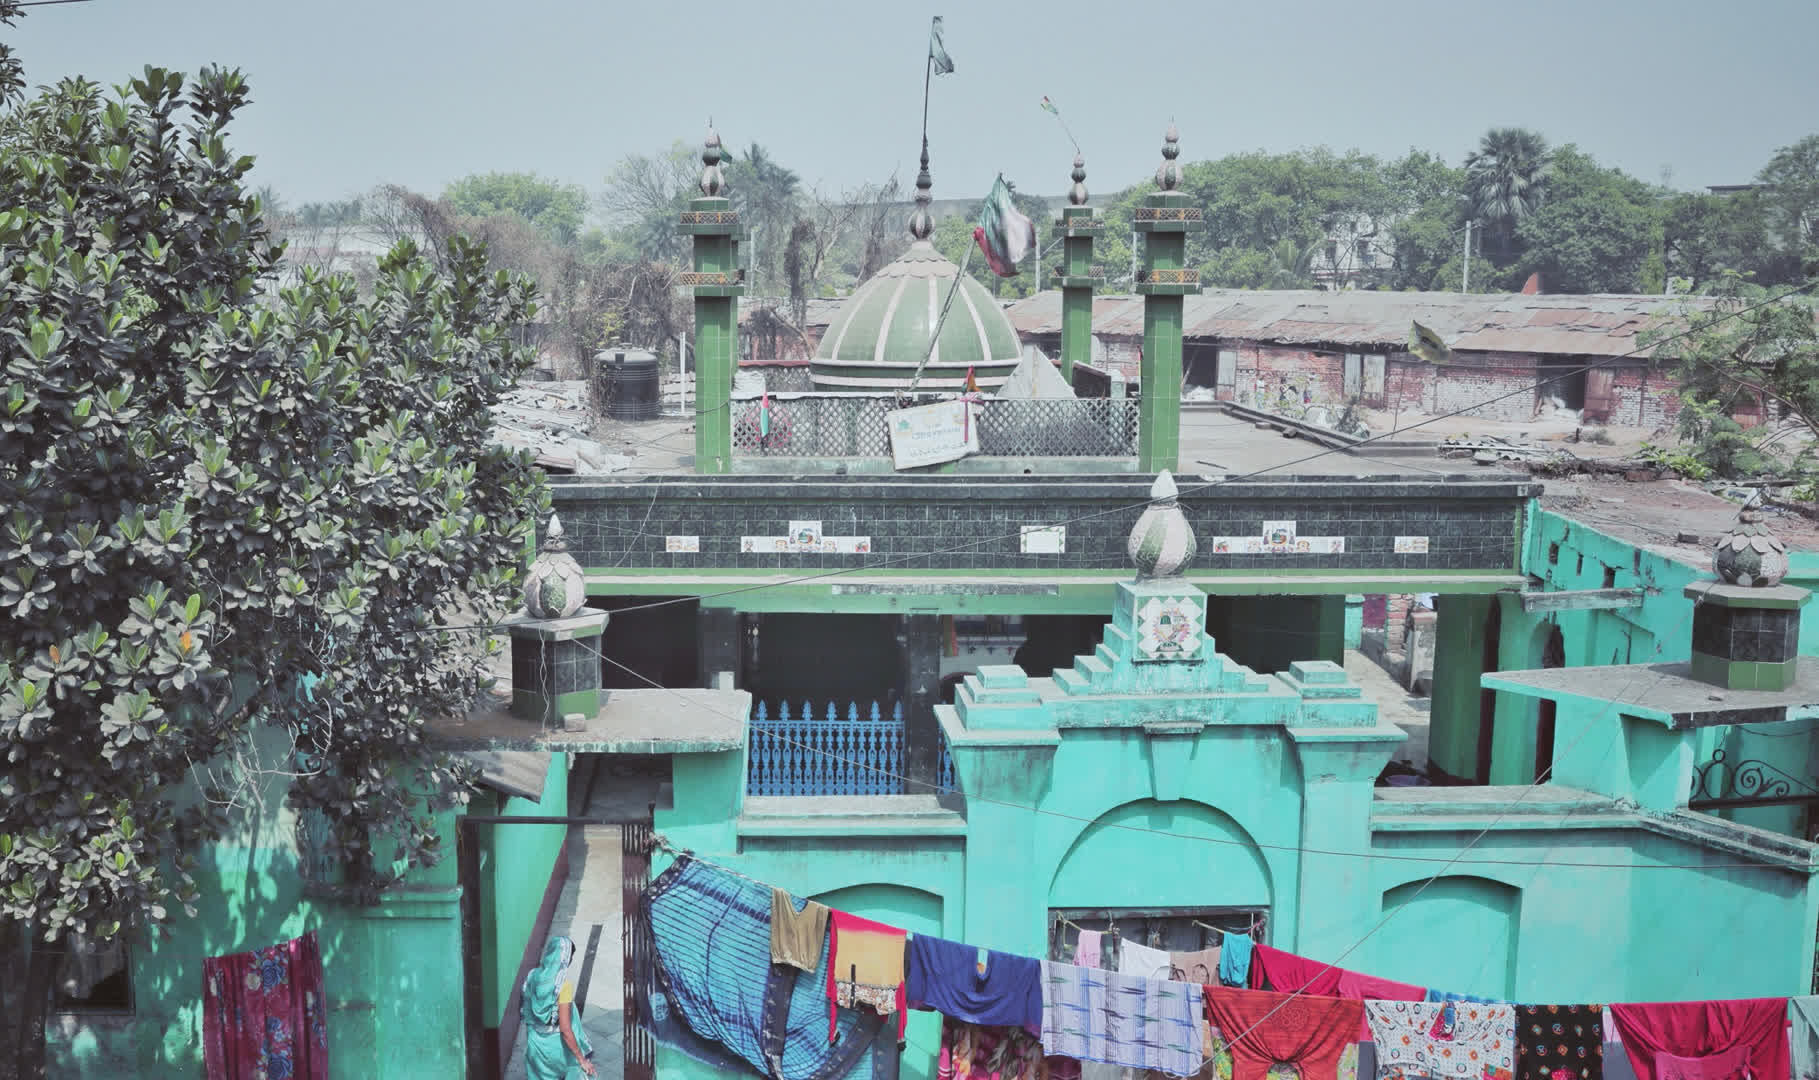 The dargah next to the mosque